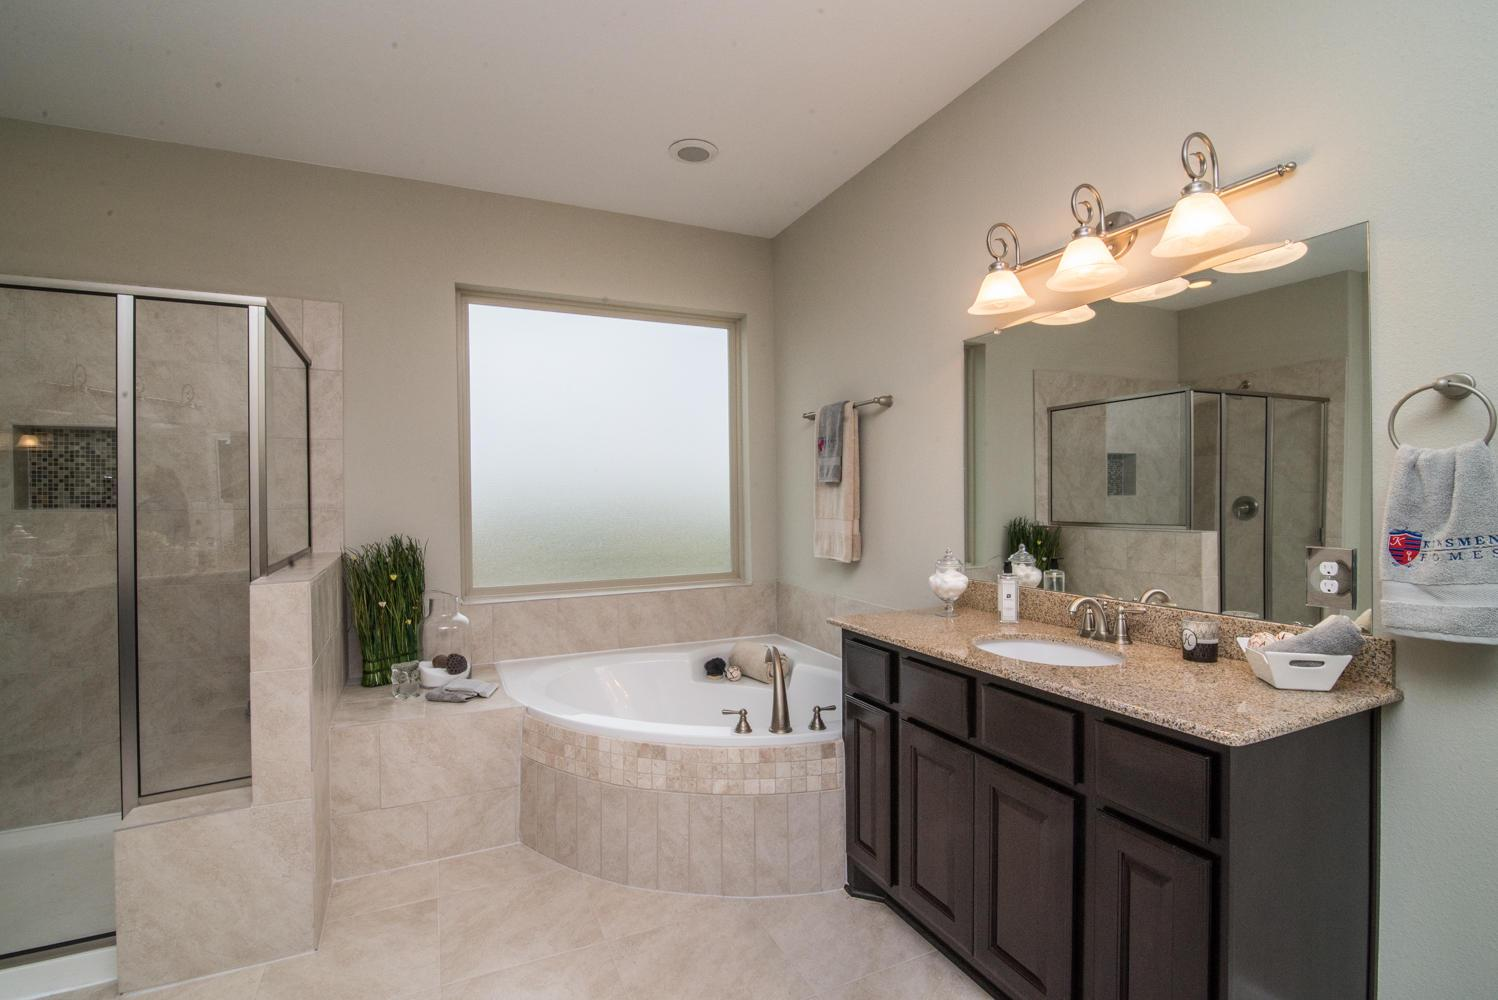 Bathroom featured in The Jennifer By Kinsmen Homes  in Beaumont, TX